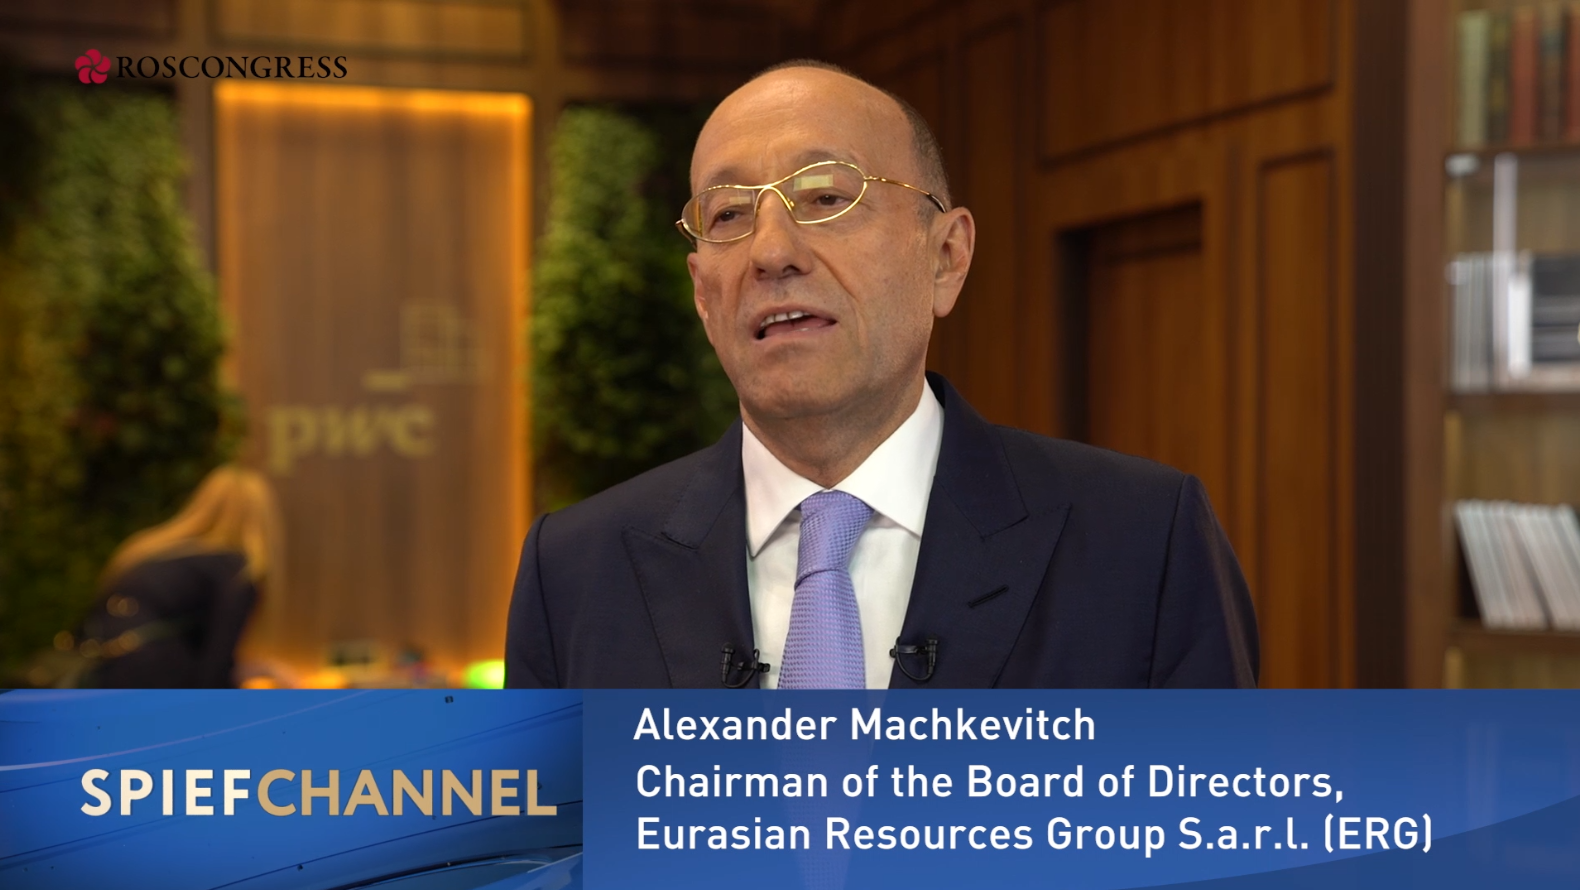 Александр Машкевич, Председатель Совета директоров Eurasian Resources Group